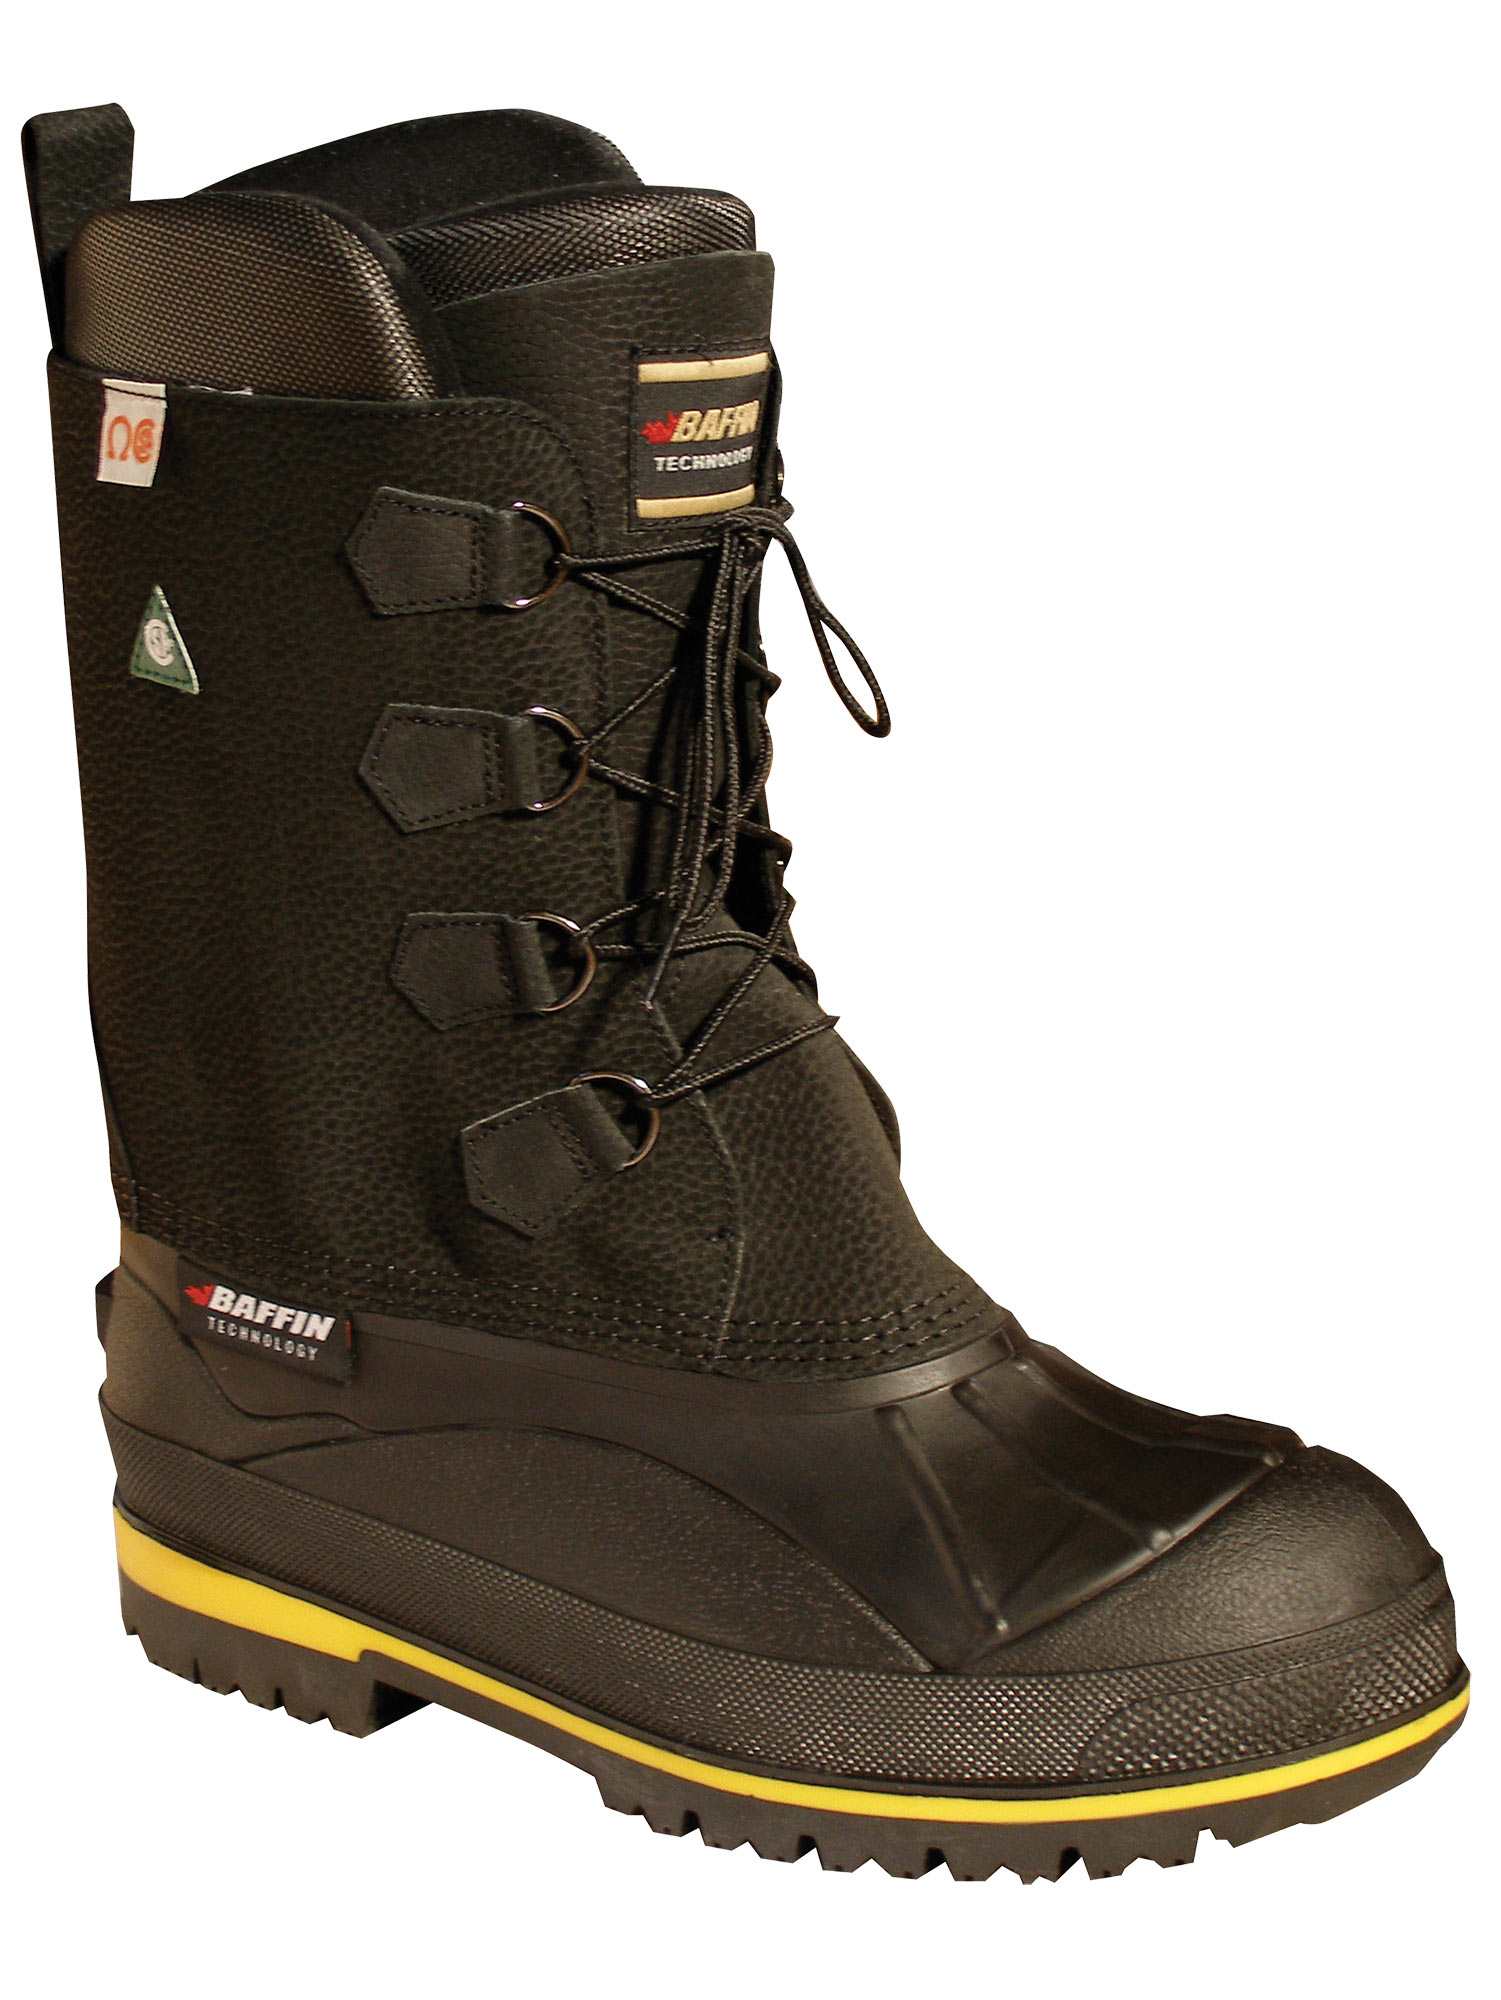 93858a295f8 Baffin NWT Mens Extreme Cold Work Boots - 98570935